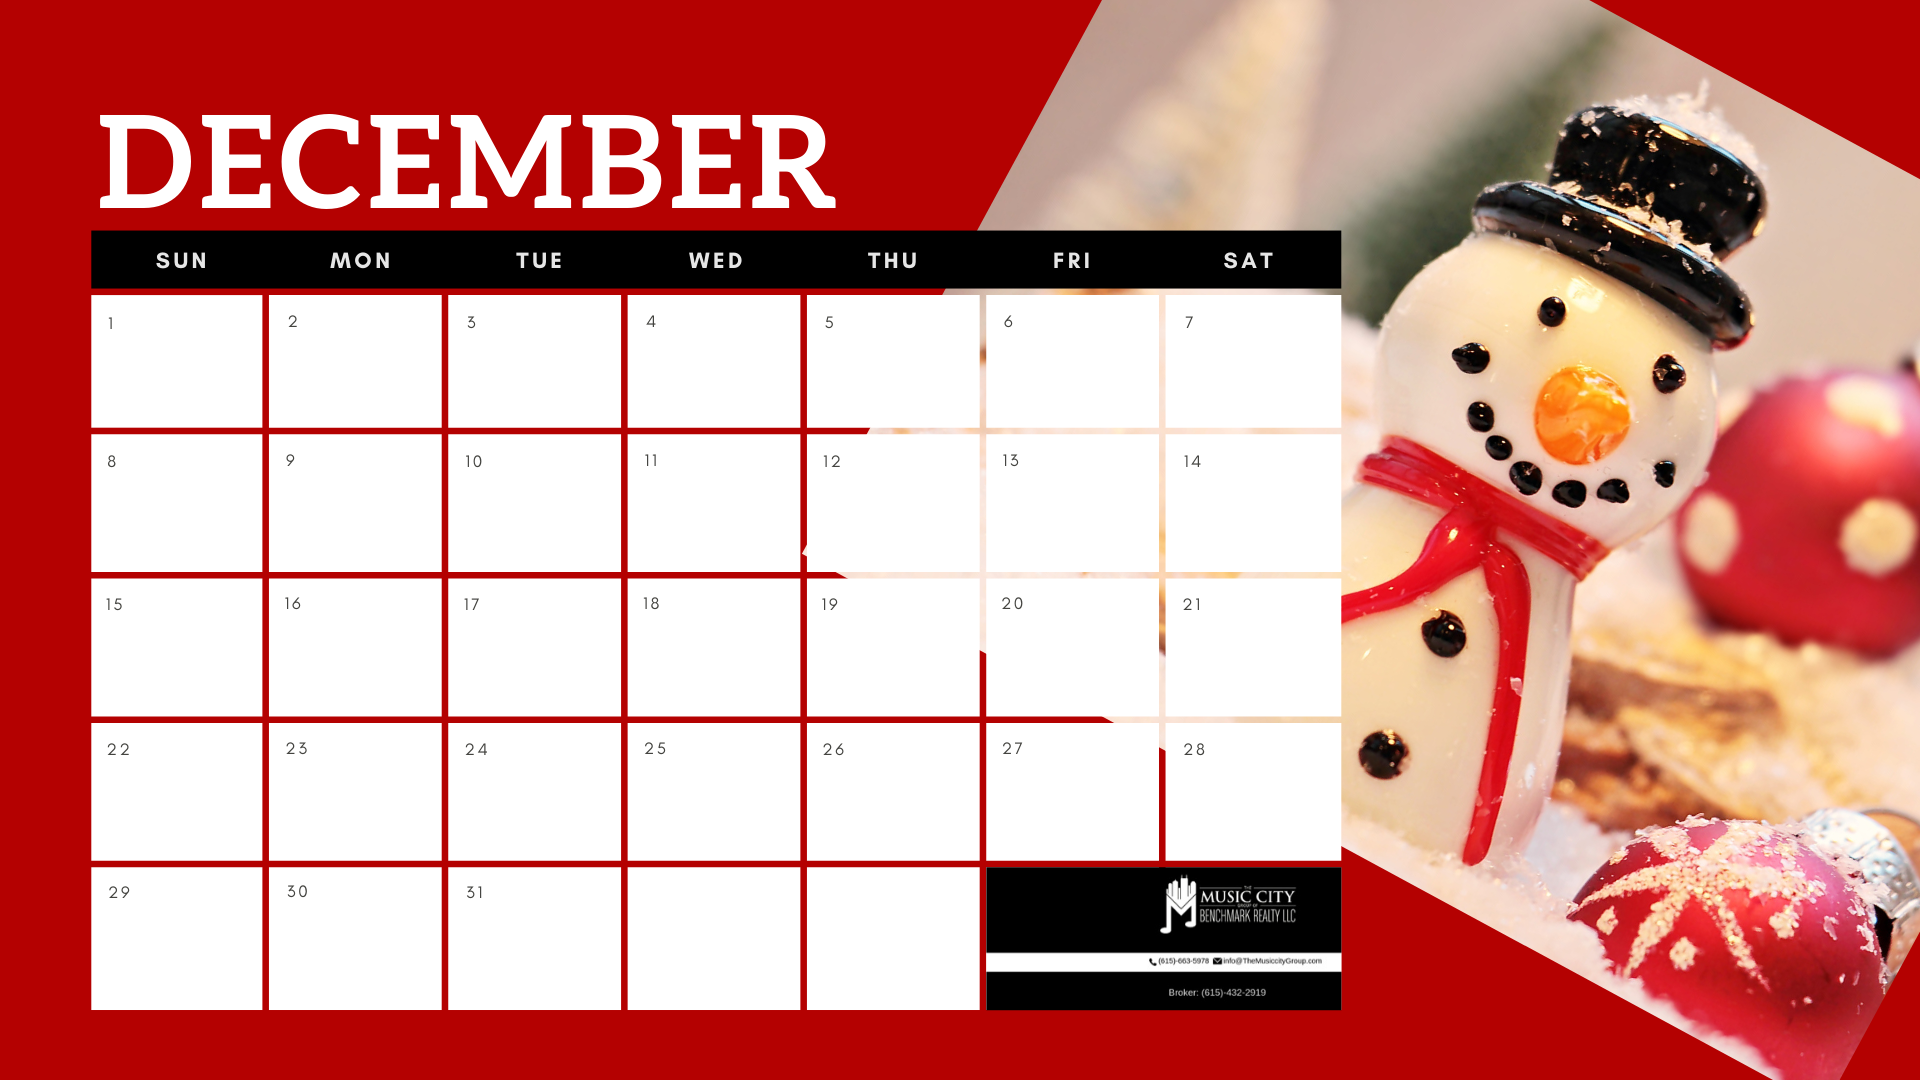 December Calendar with Snowman and ornaments